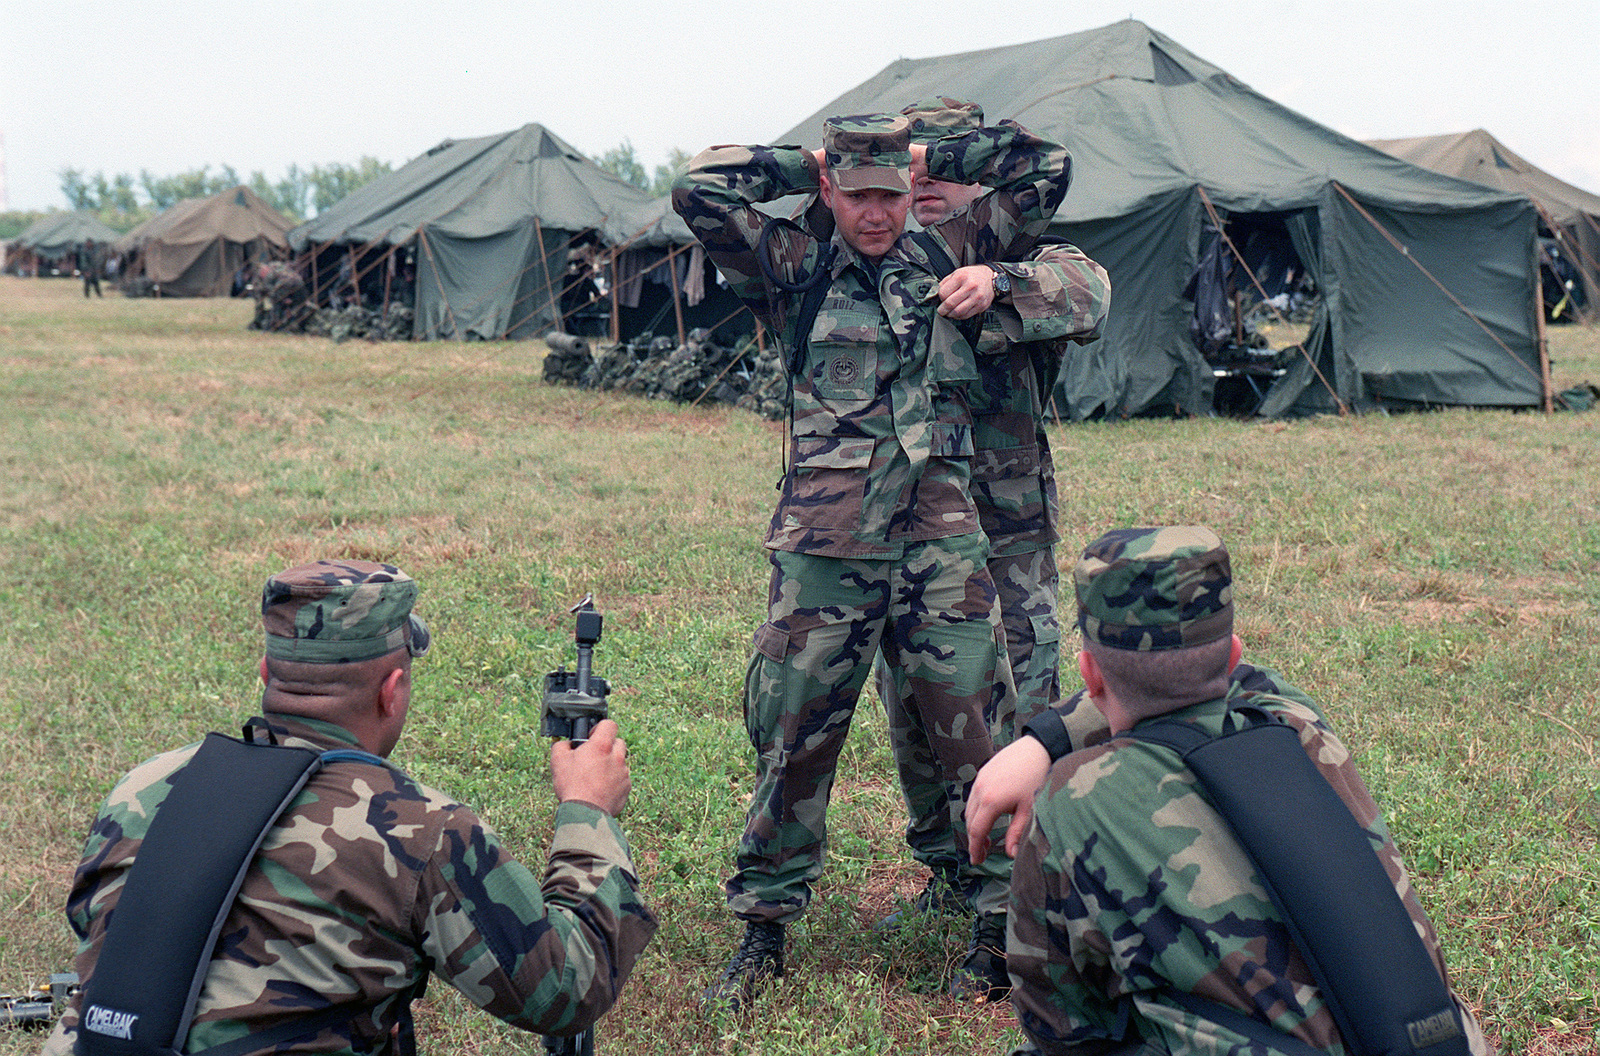 US Army USA Soldiers Assigned To A Company 1ST Battalion 17th Infantry Division Practice Search And Control Of Suspect Techniques Near The Tent City